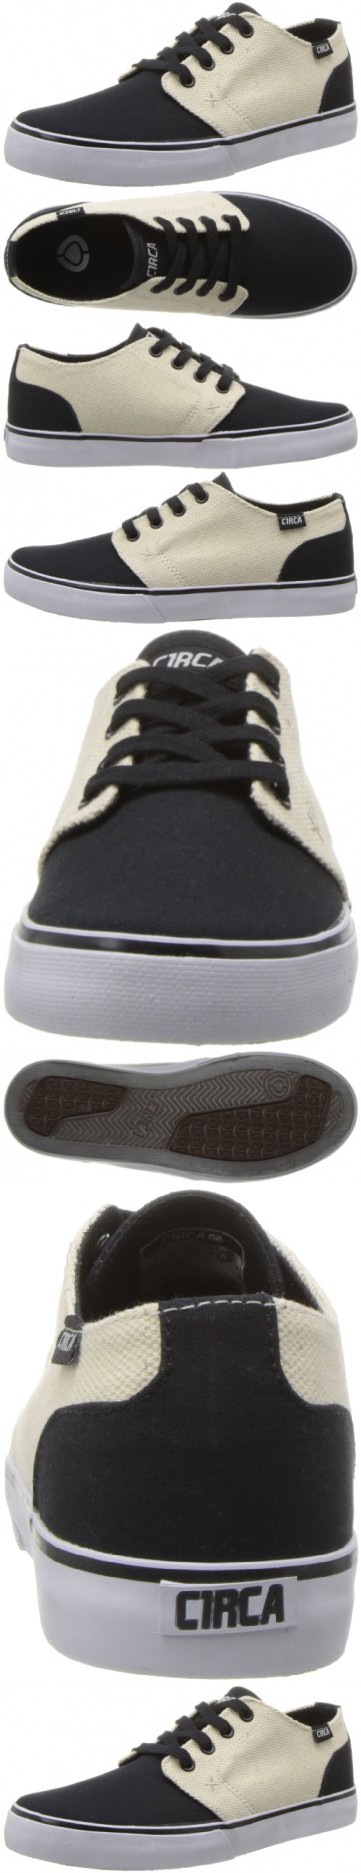 C1RCA Men's DRF Fashion Sneaker,Black/Hemp,5.5 M US